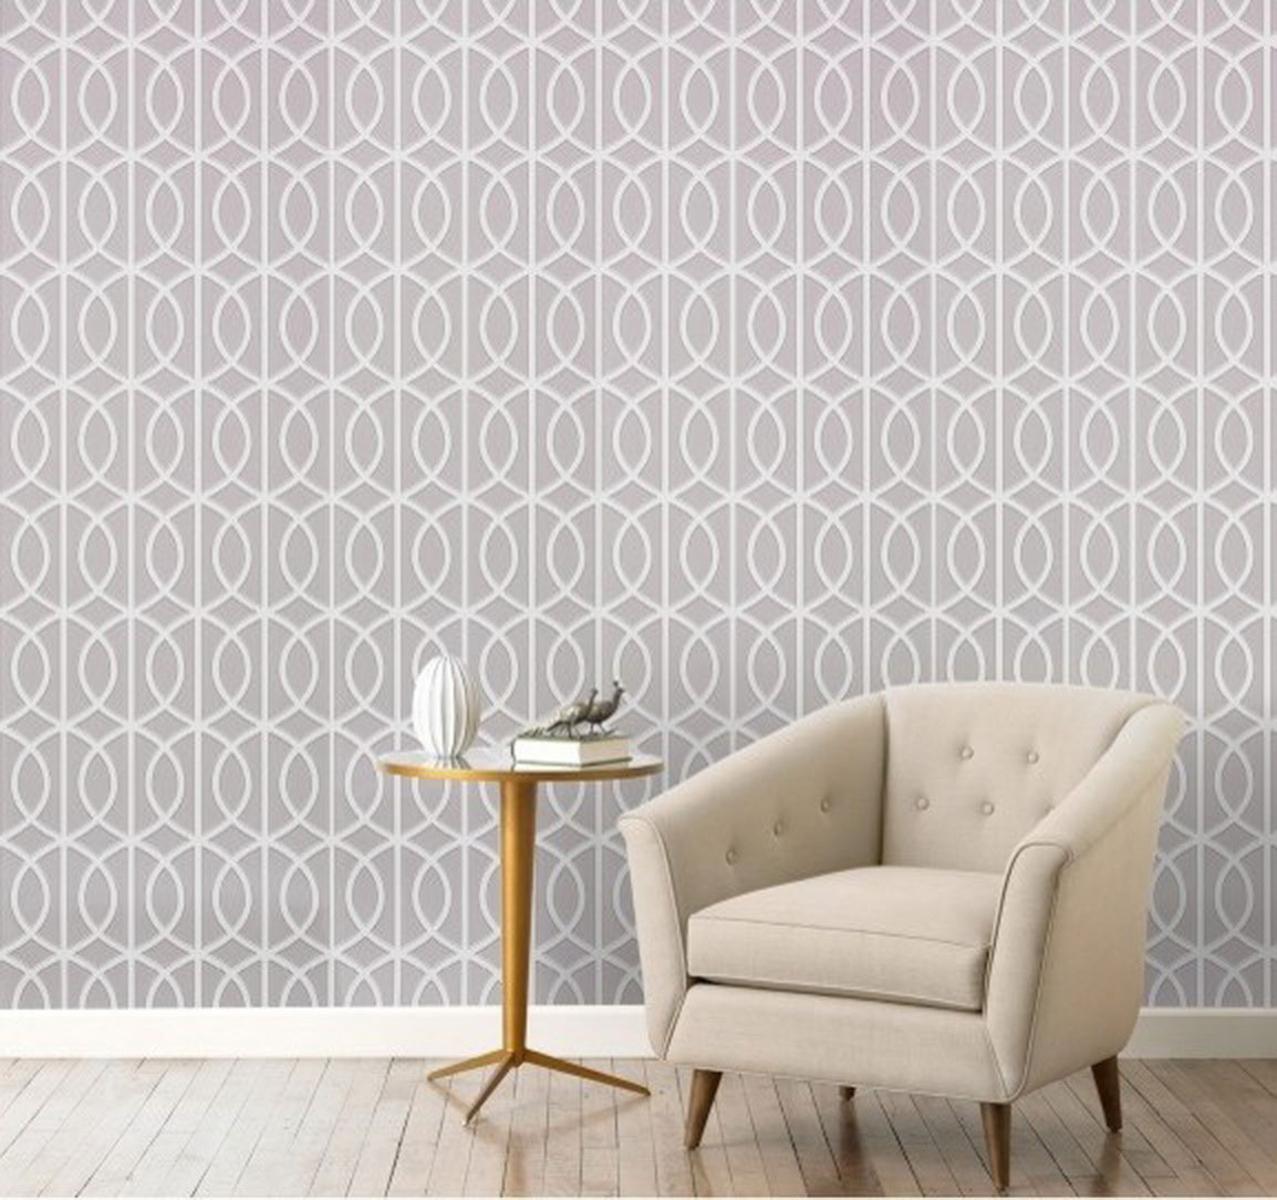 Home Decorative Design Wallpaper Dealers In Chennai Wall Mural Wallpaper Manufacturer